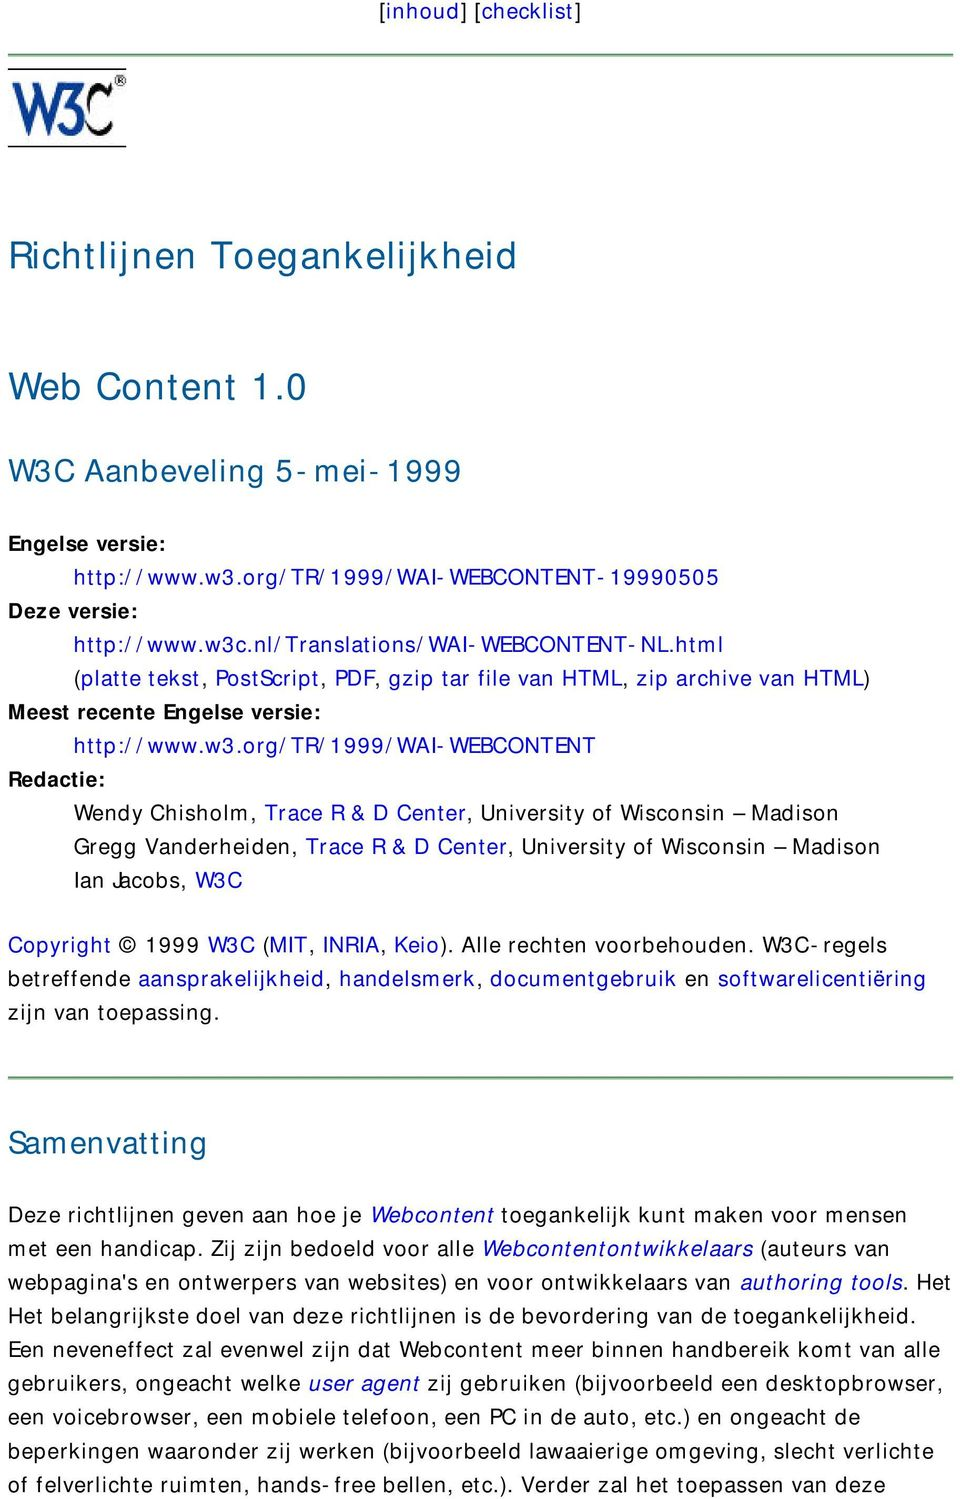 org/tr/1999/wai-webcontent Redactie: Wendy Chisholm, Trace R & D Center, University of Wisconsin Madison Gregg Vanderheiden, Trace R & D Center, University of Wisconsin Madison Ian Jacobs, W3C